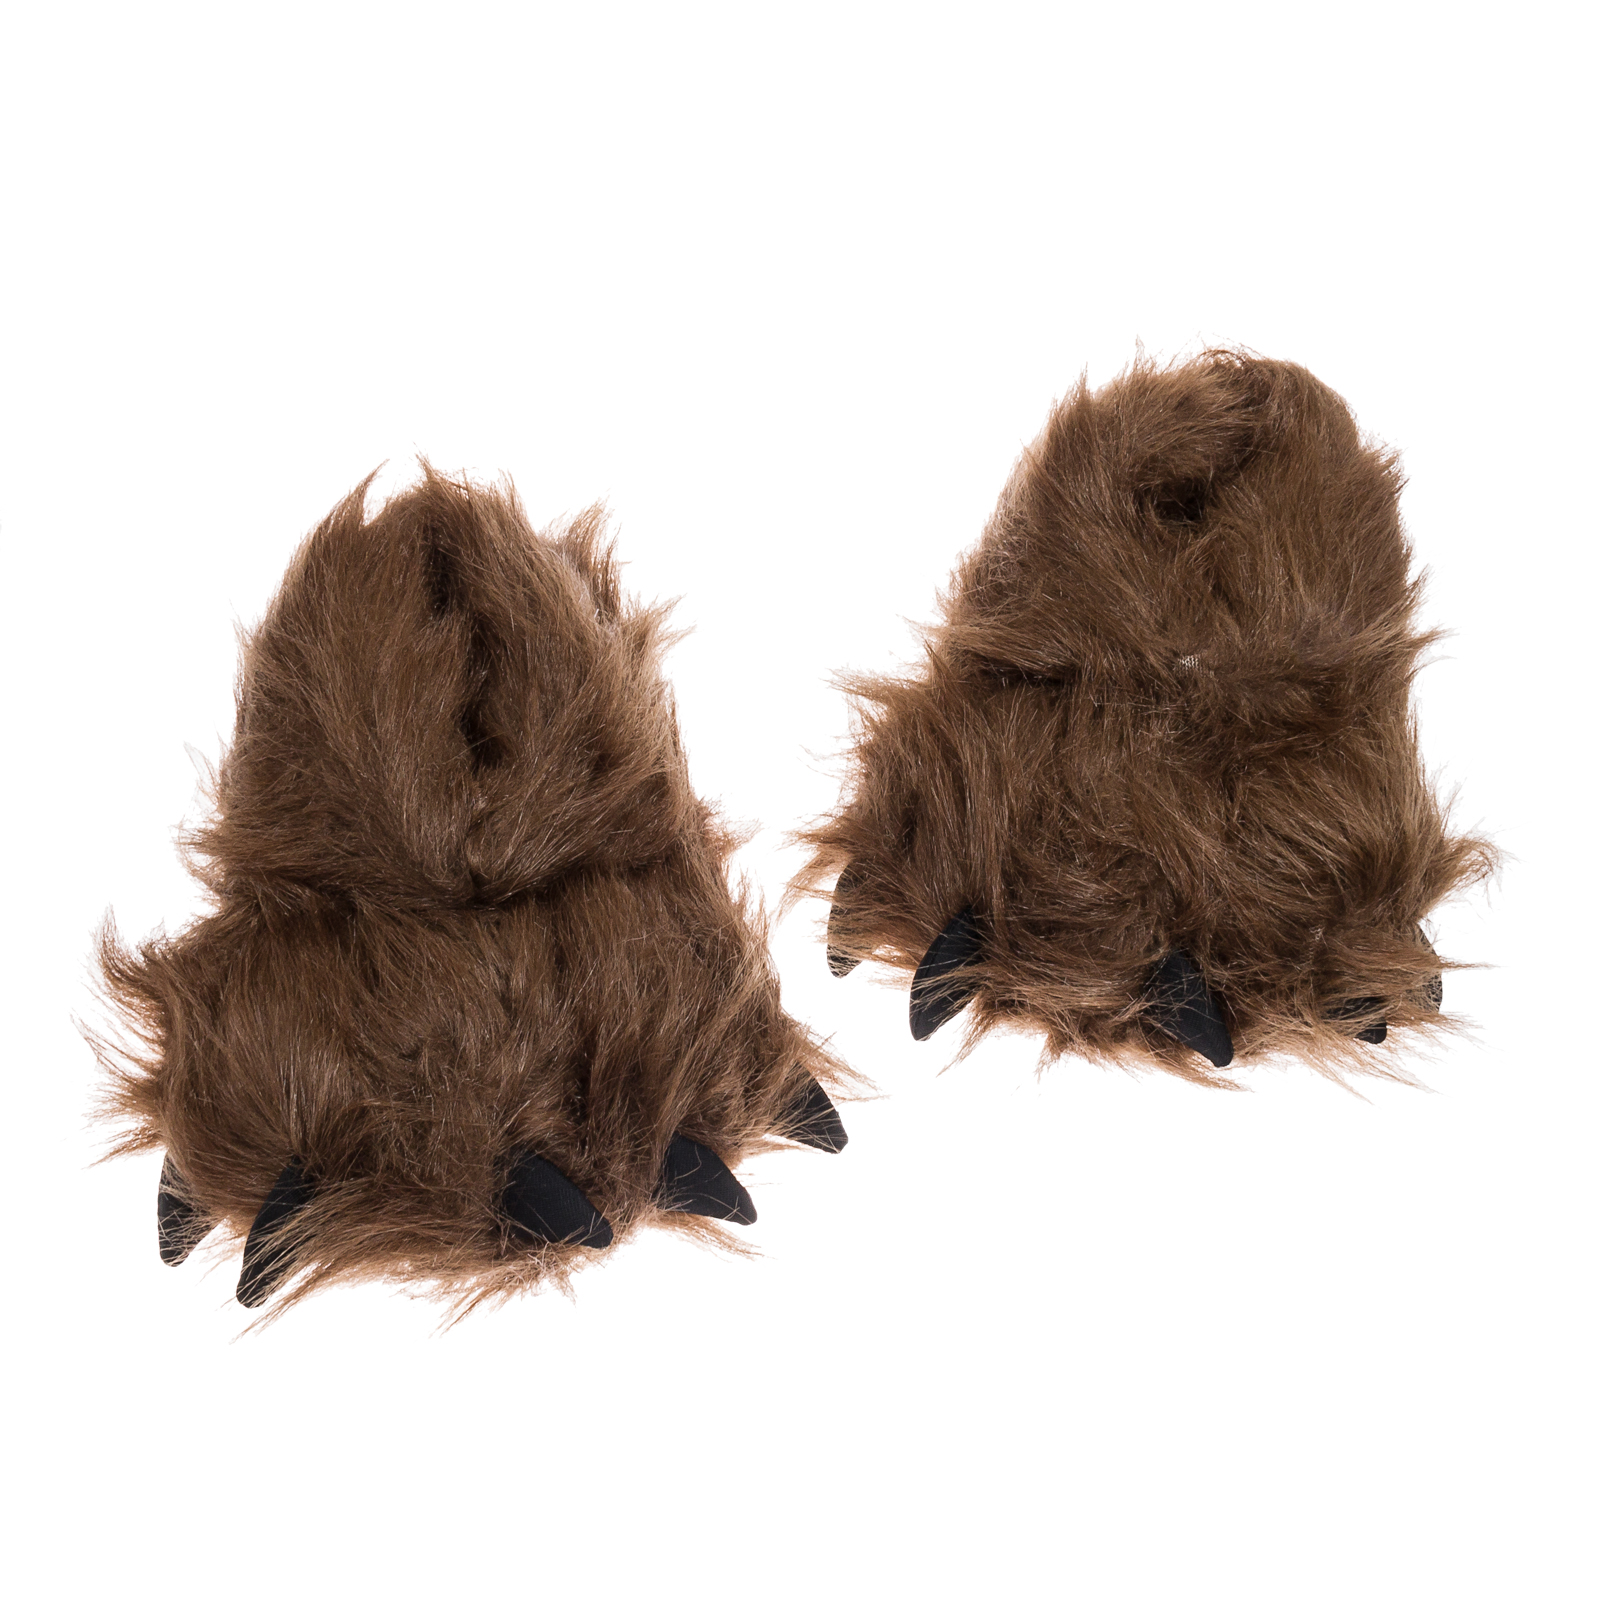 Brown Plush Bear Paw Slippers Footwear Halloween Costume Accessory (Small)